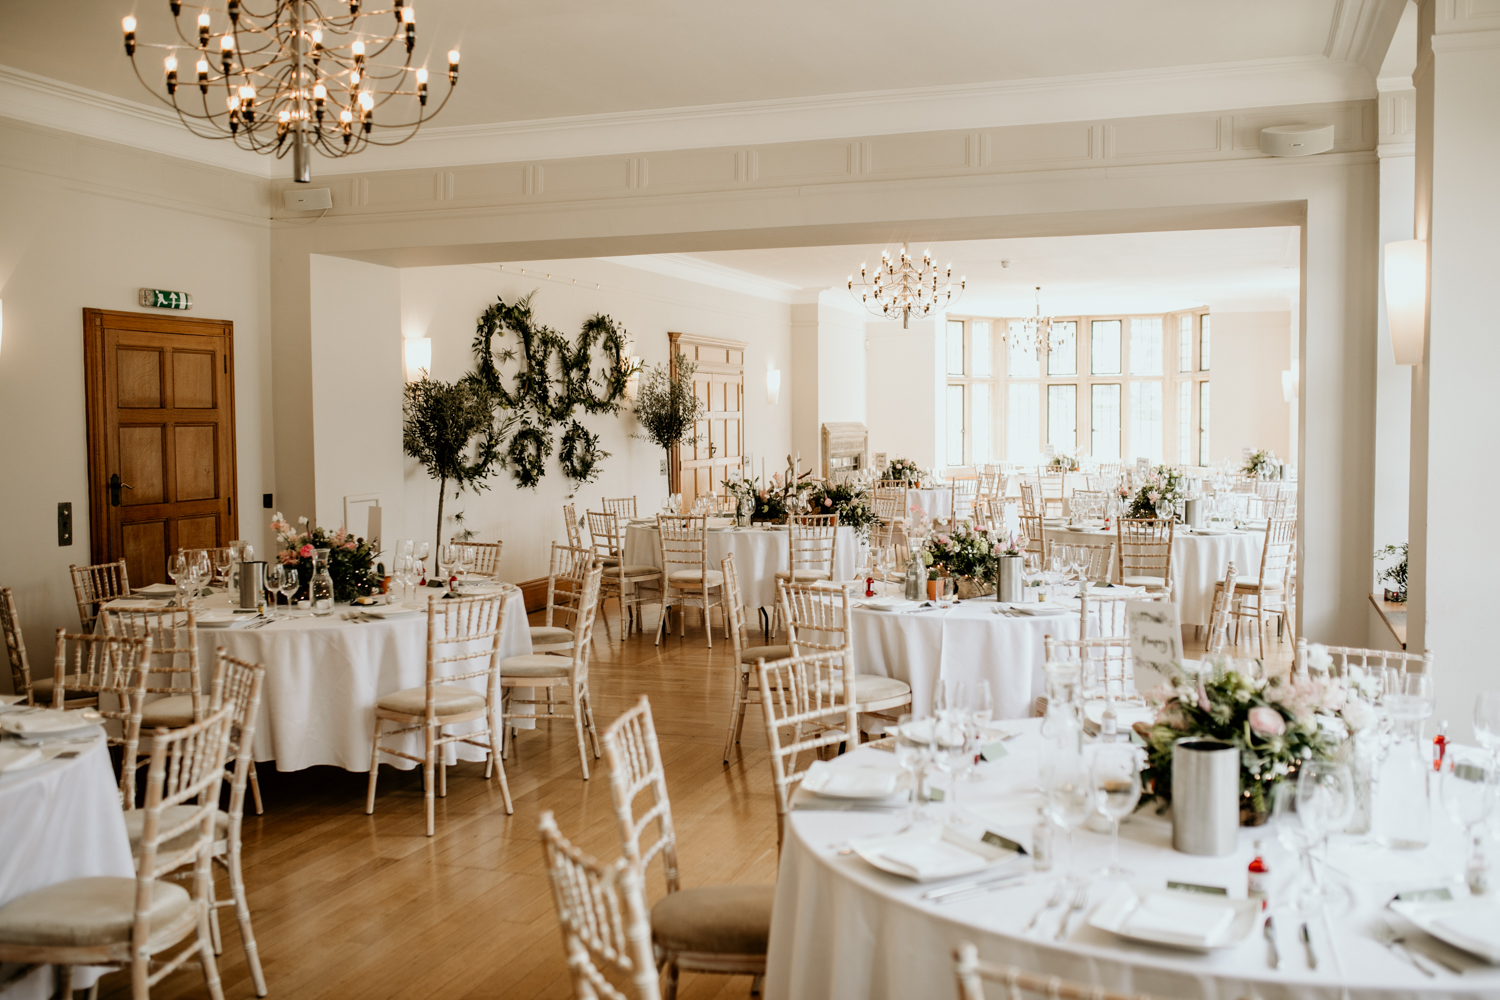 reception room with round tables at Coombe Lodge Blagdon wedding venue